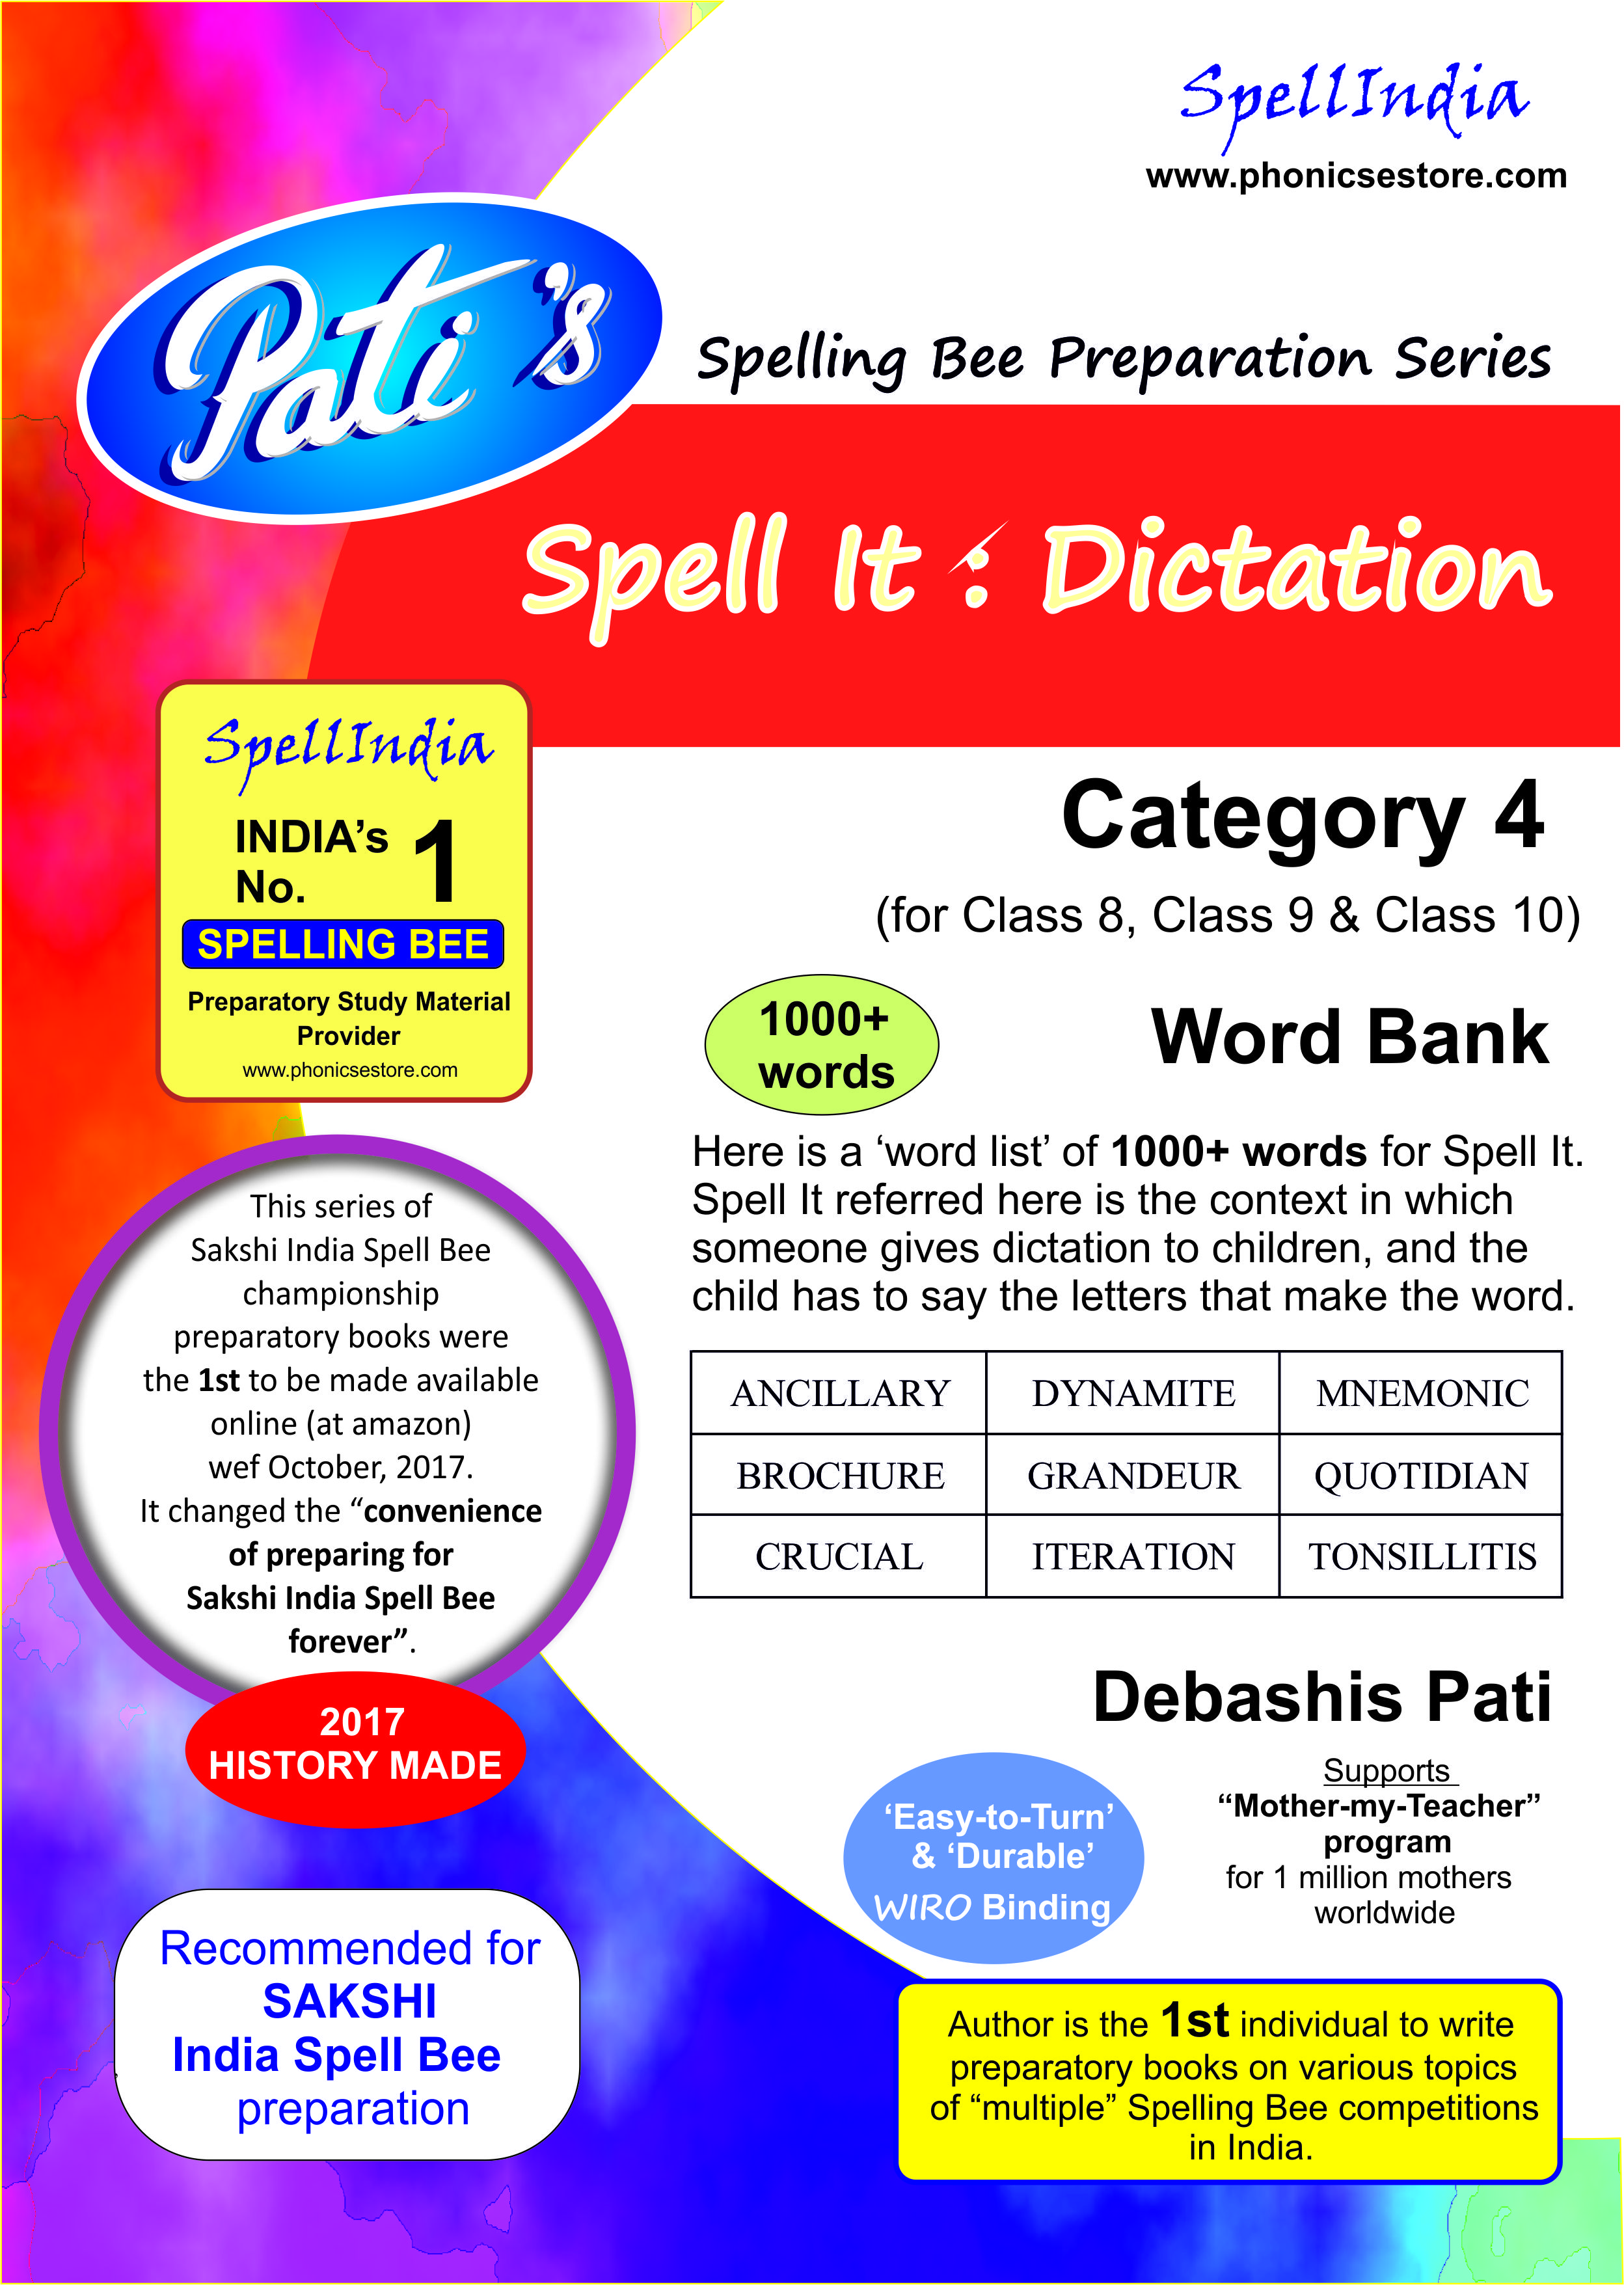 sakshi india spell bee category 4 book